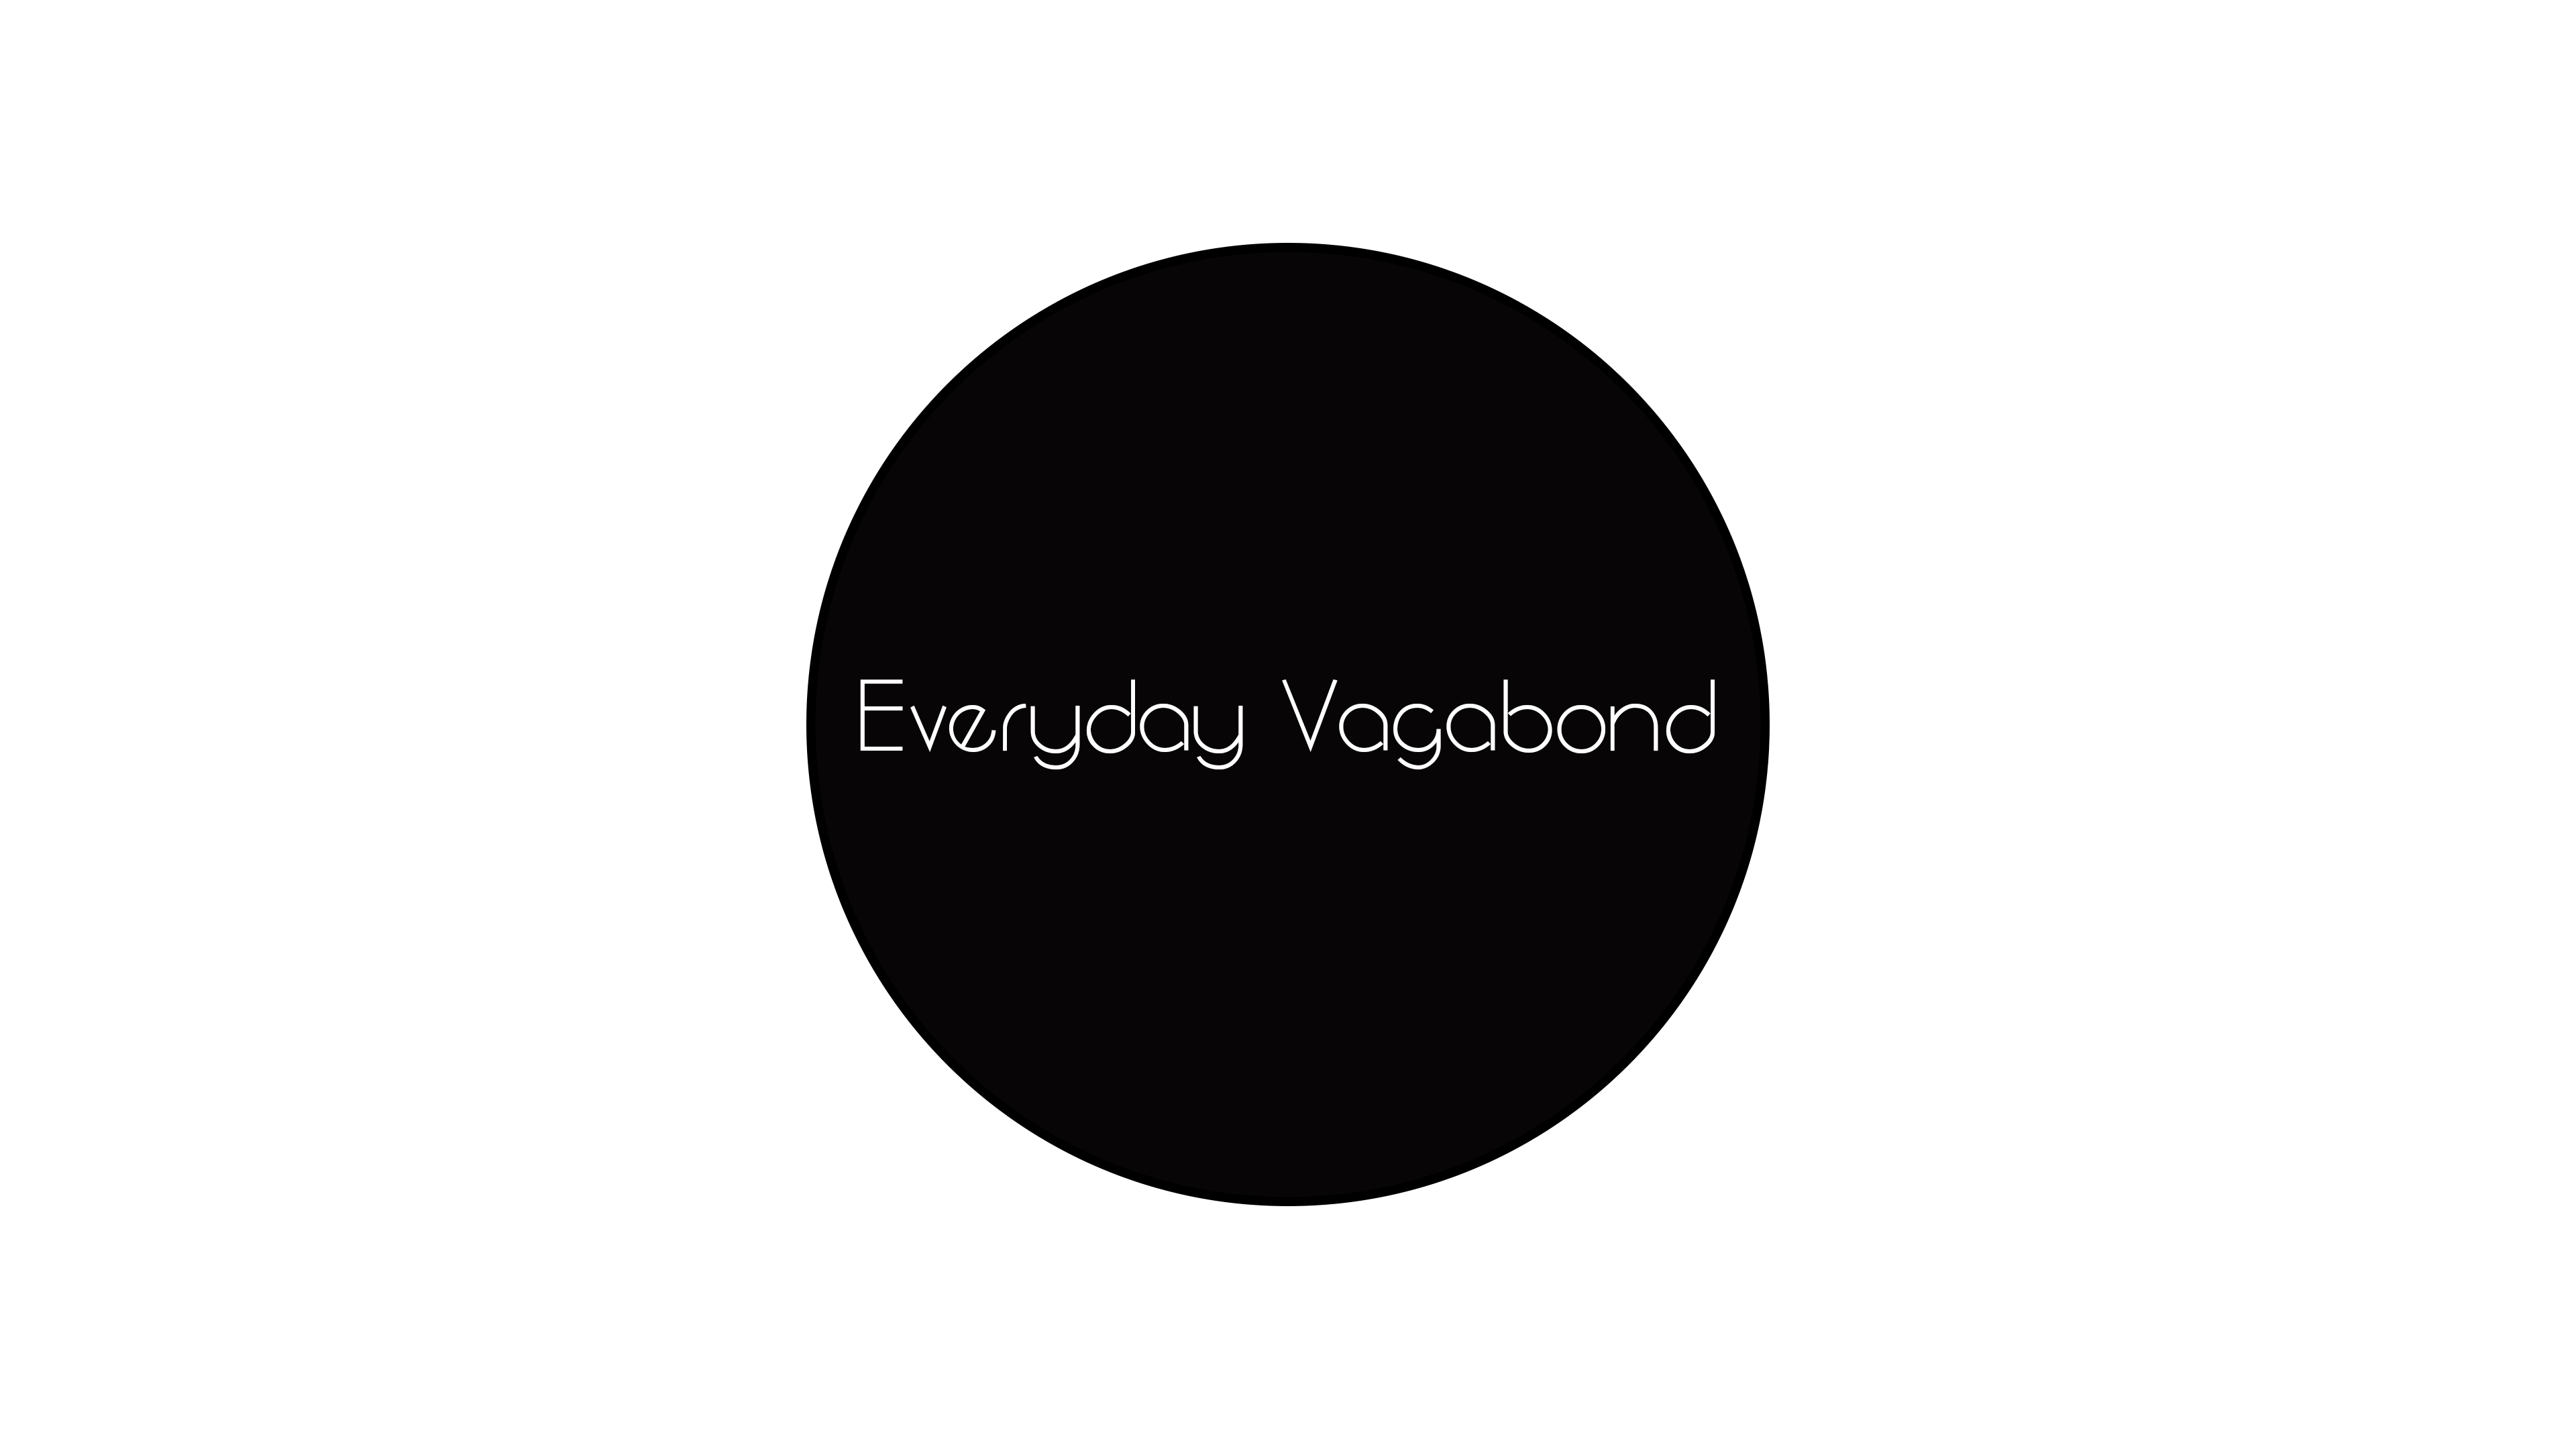 Everyday Vagabond, a chatbot developer